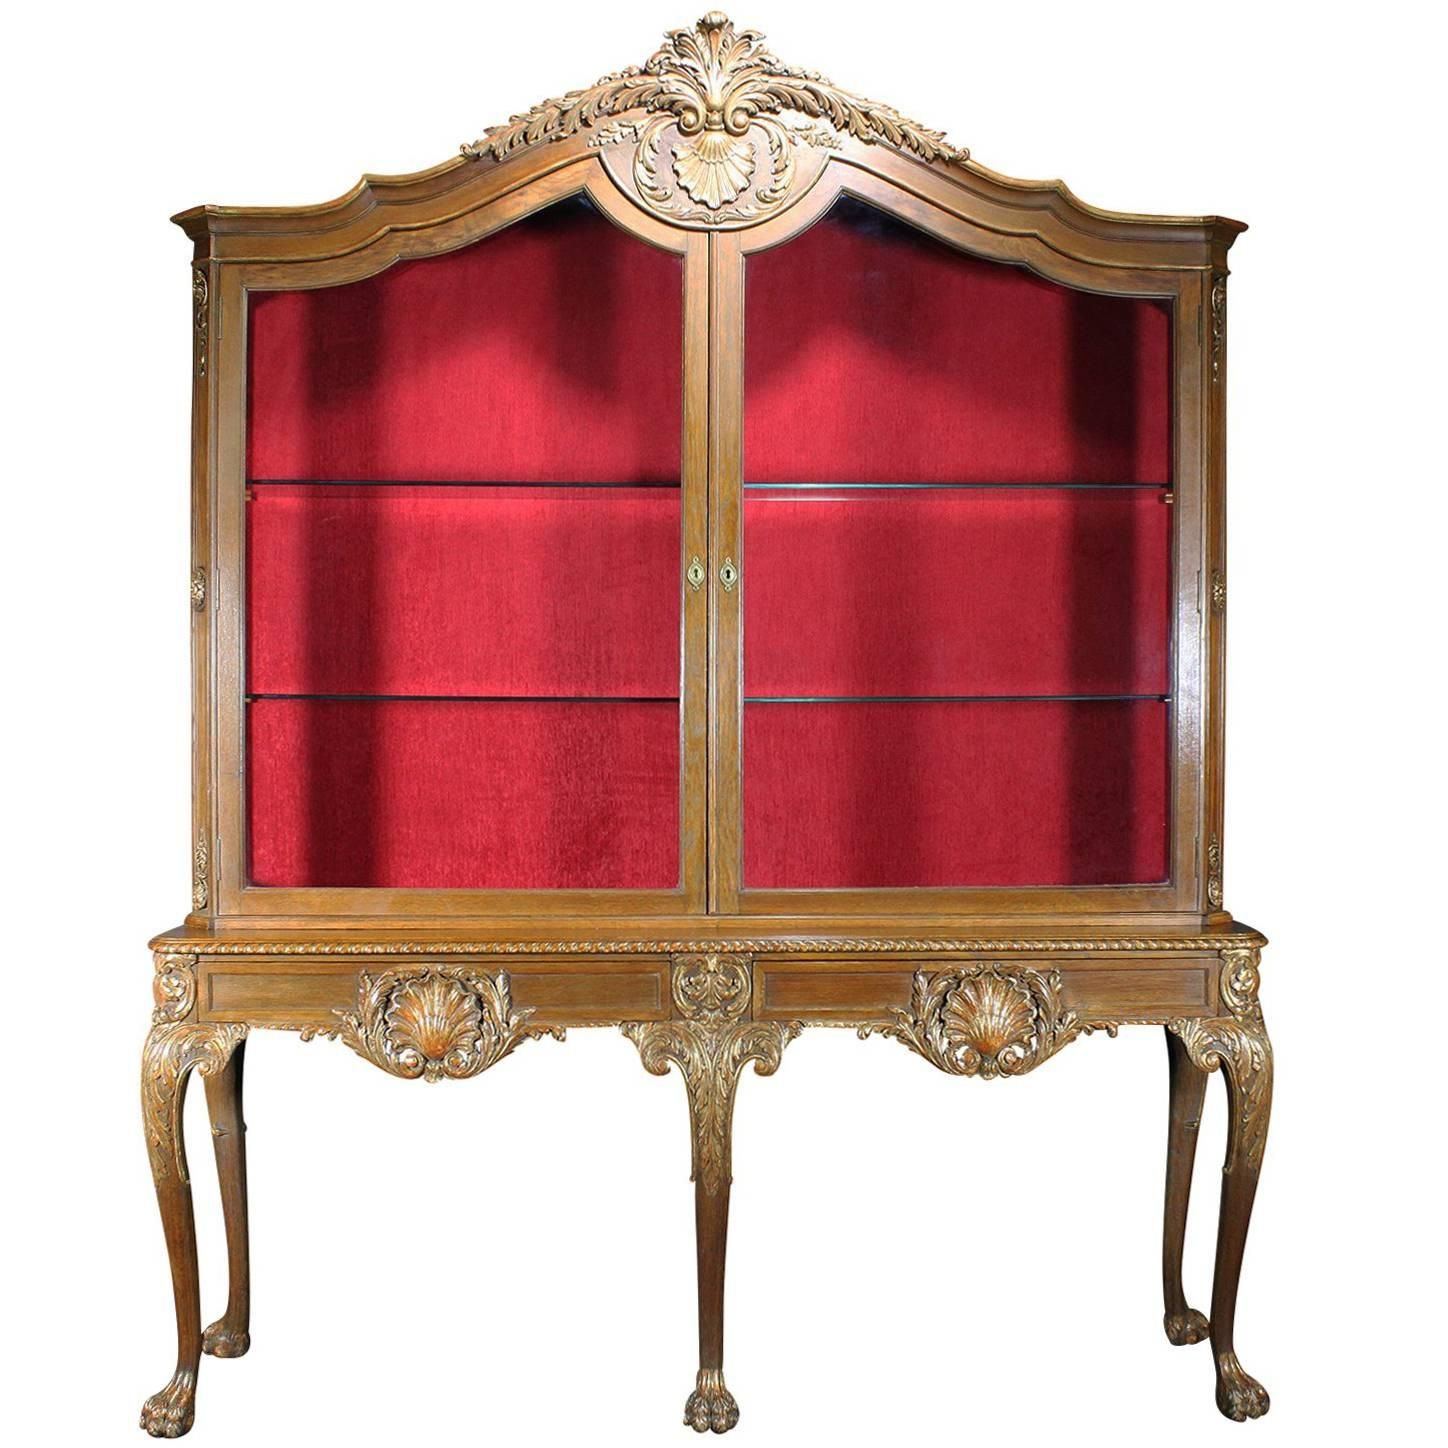 Rare English 19th-20th Century Chippendale Style Carved and Parcel-Gilt Vitrine